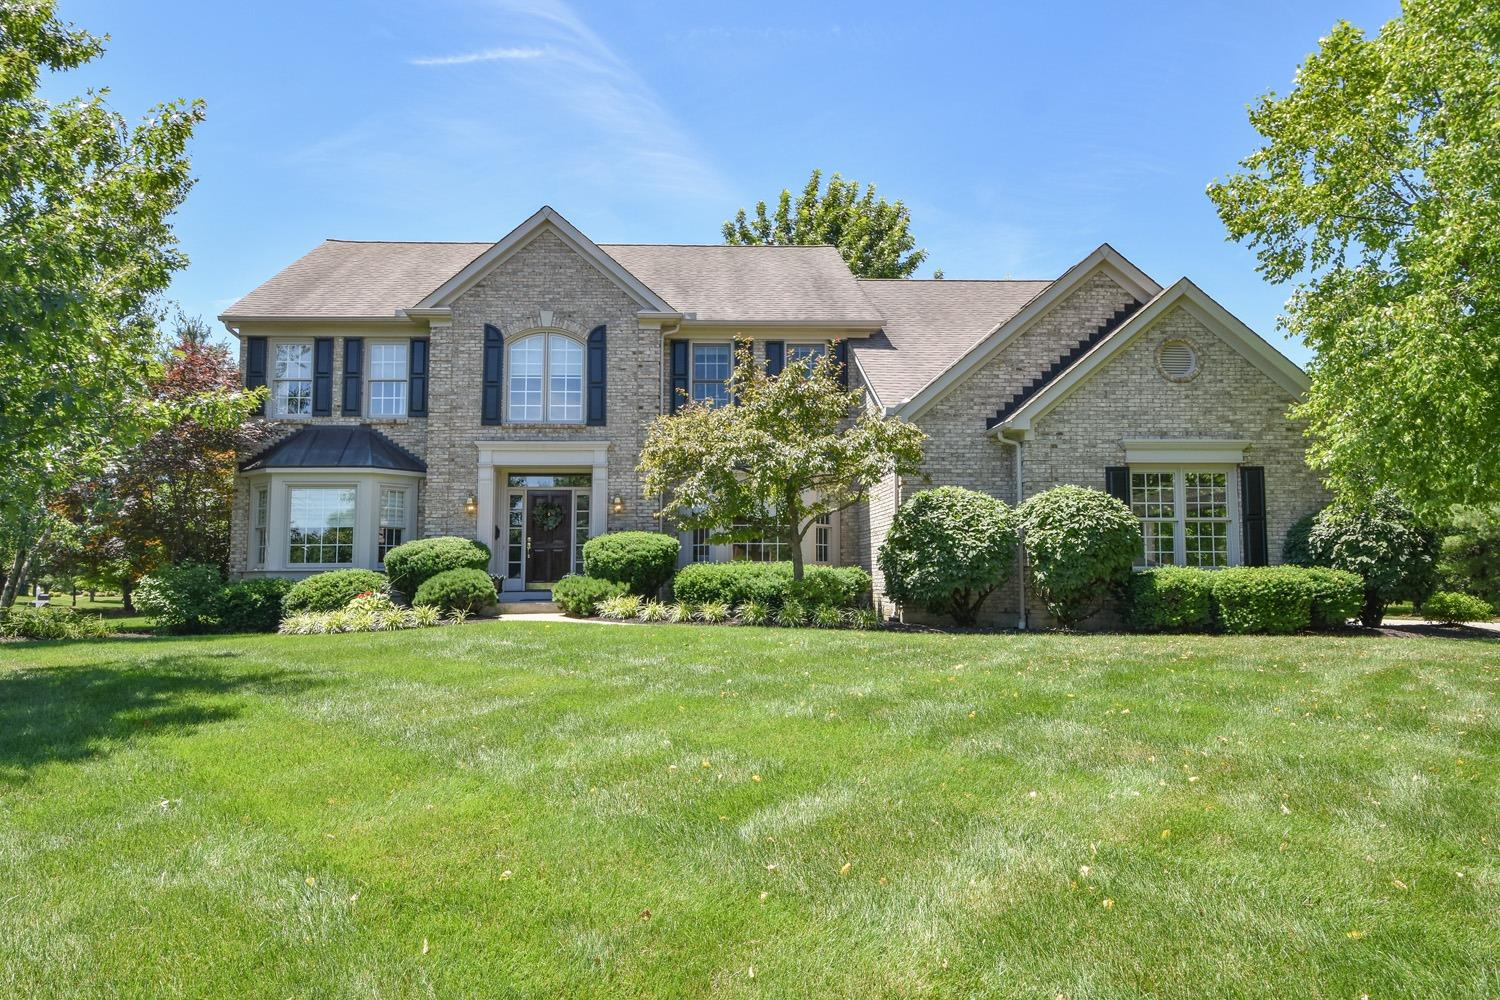 Property for sale at 8089 Silkyrider Court, Sycamore Twp,  Ohio 45249